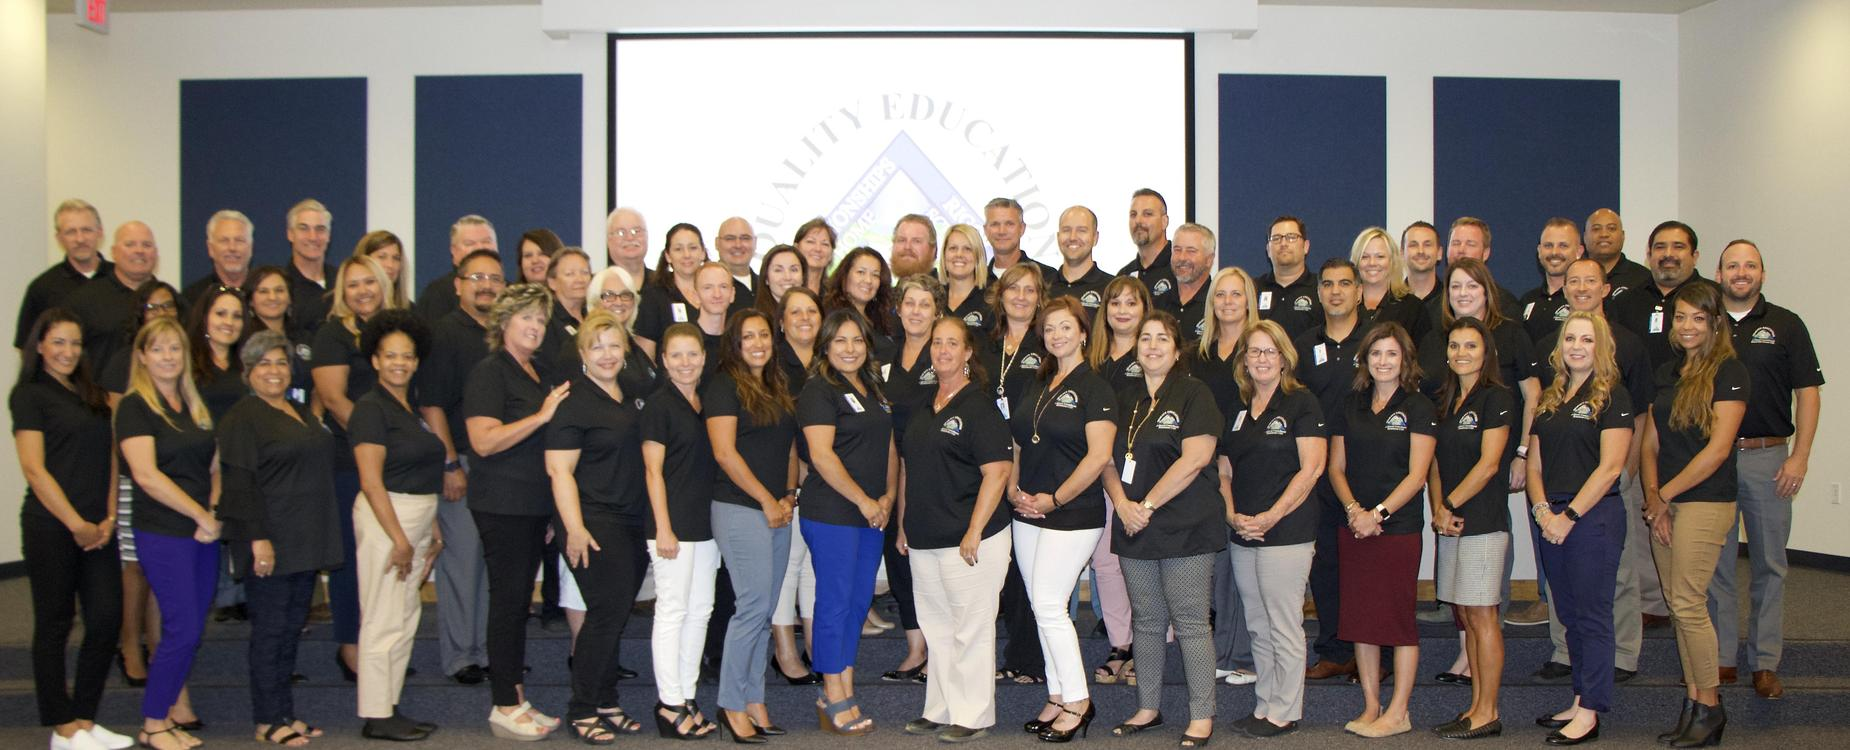 Beaumont USD Leadership Team